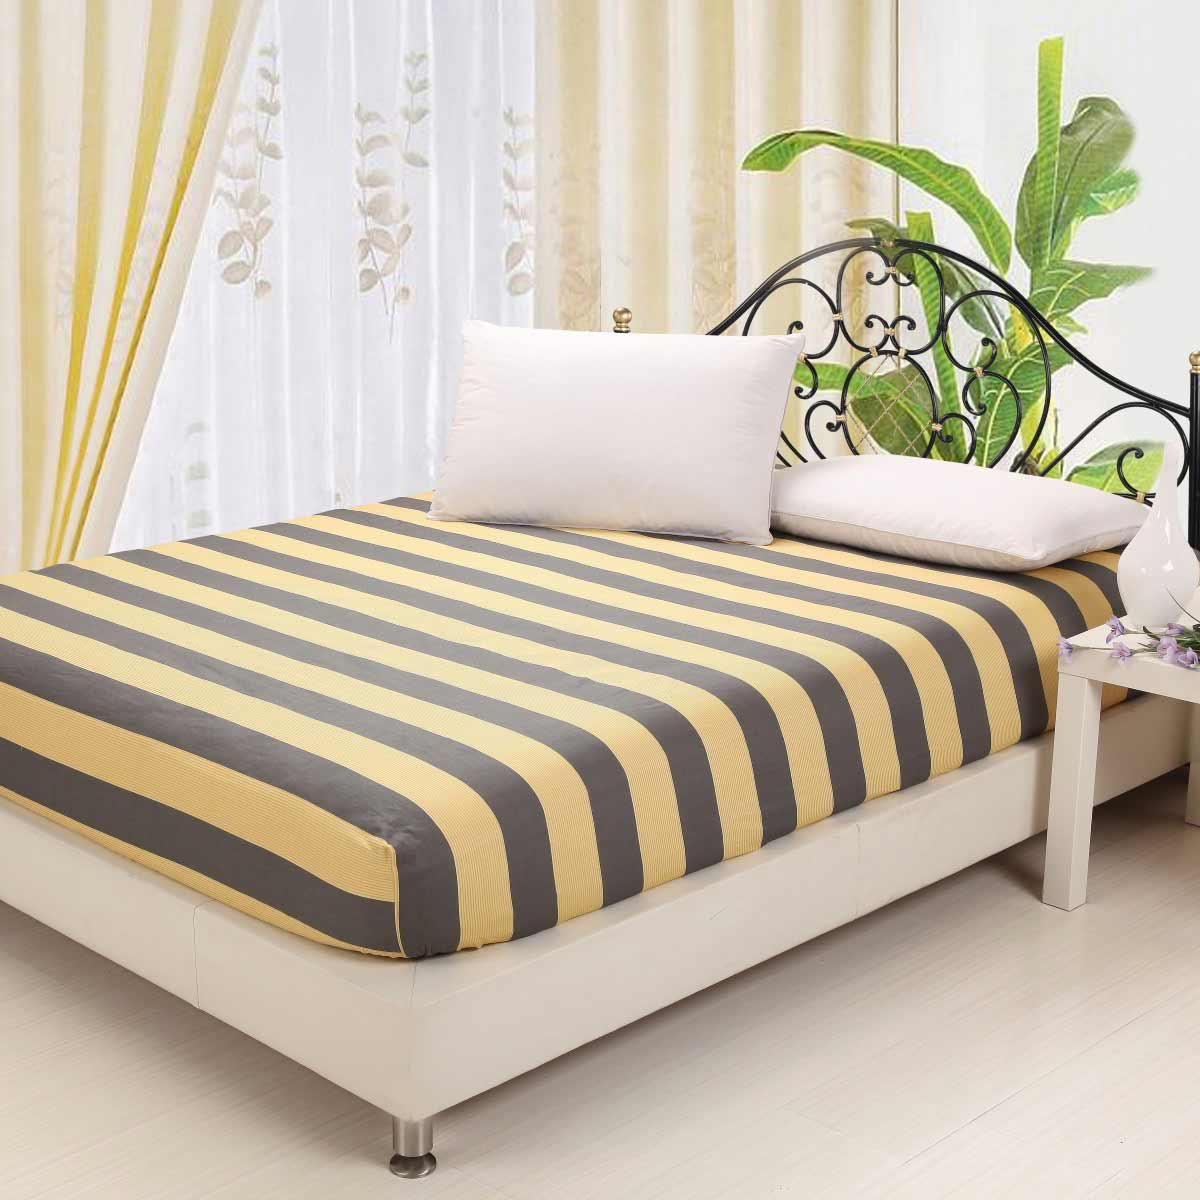 Simmons bed and mattress sets with bedspread